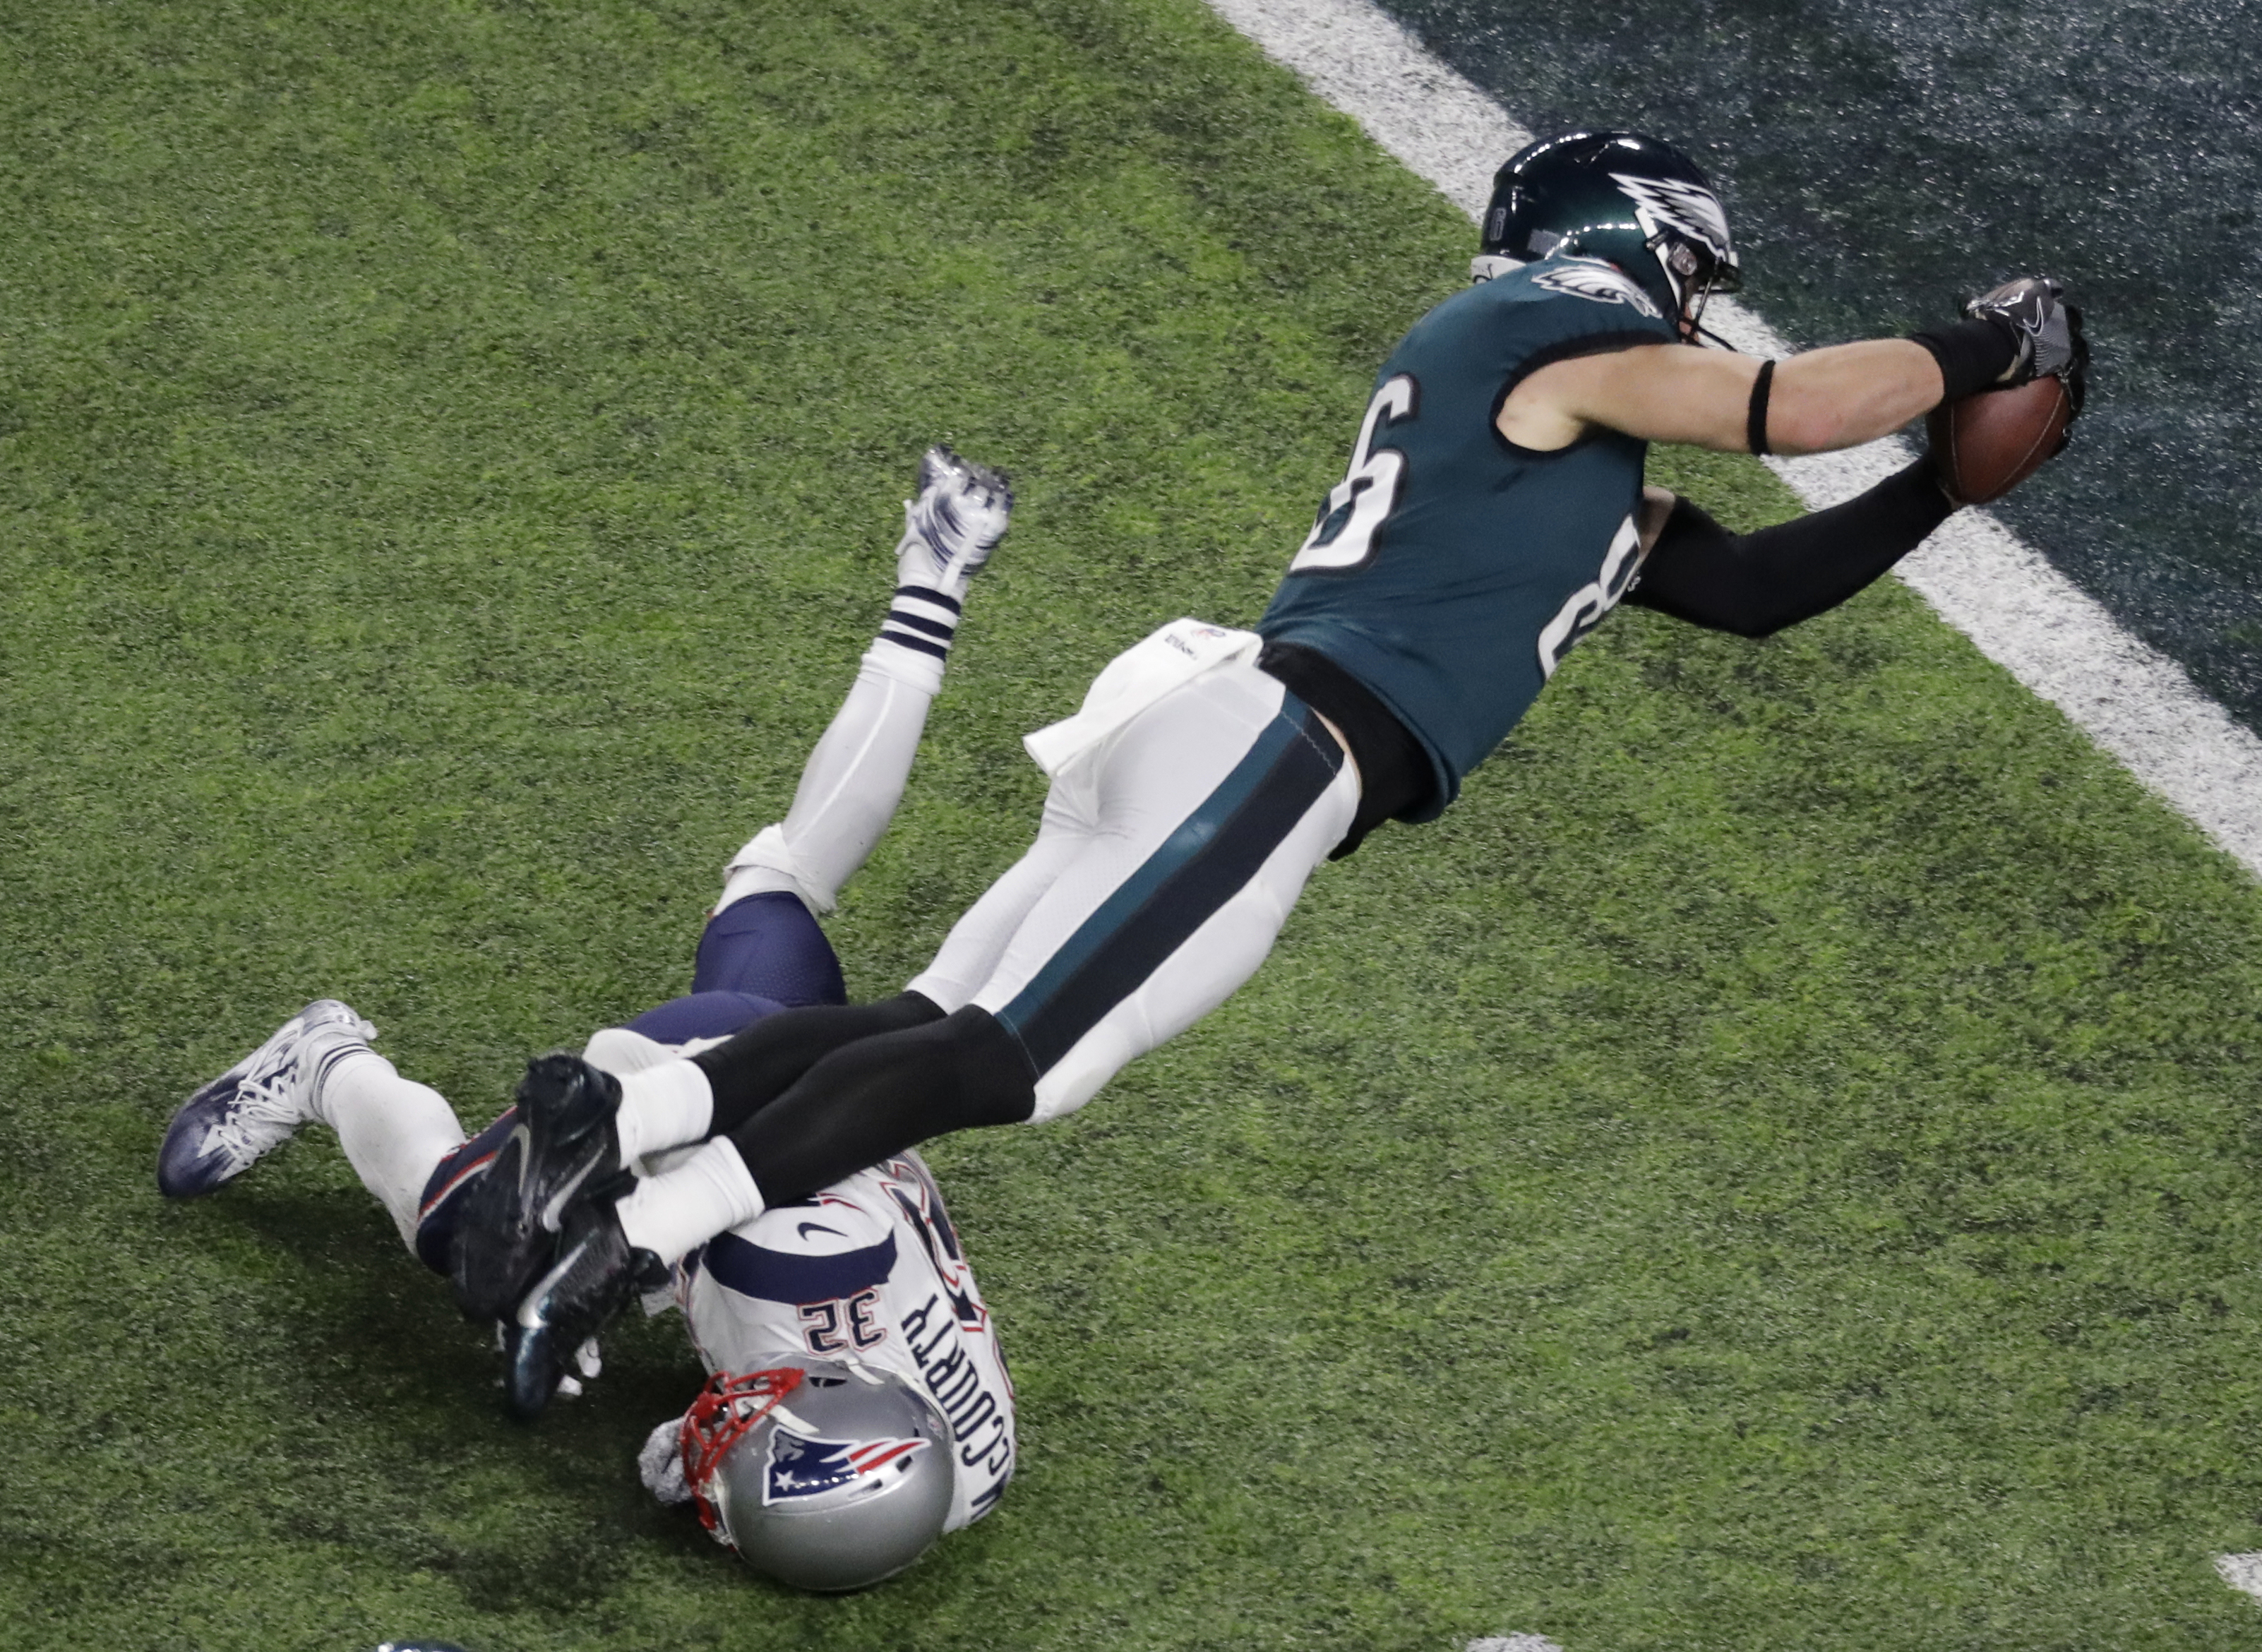 Eagles Win First Super Bowl Over Patriots 41 33 The Blade